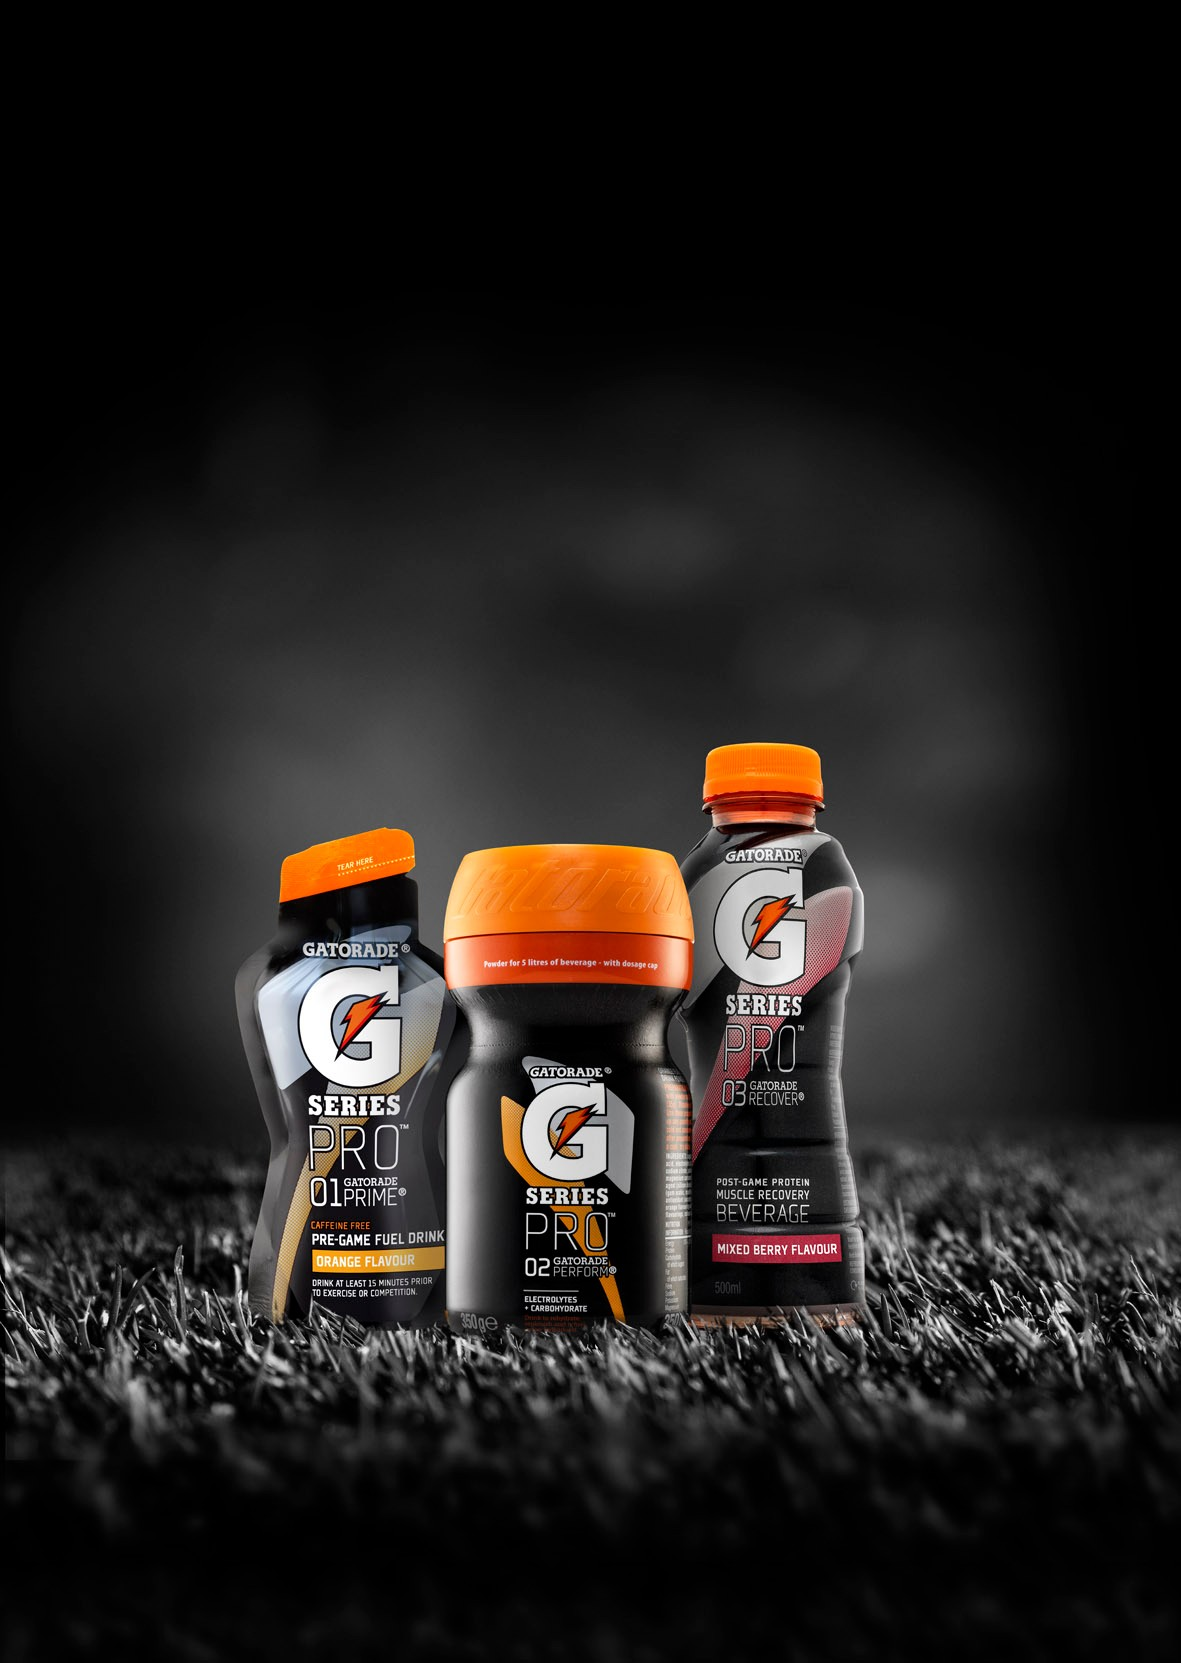 Win from within with Gatorade G Series Pro nutrition